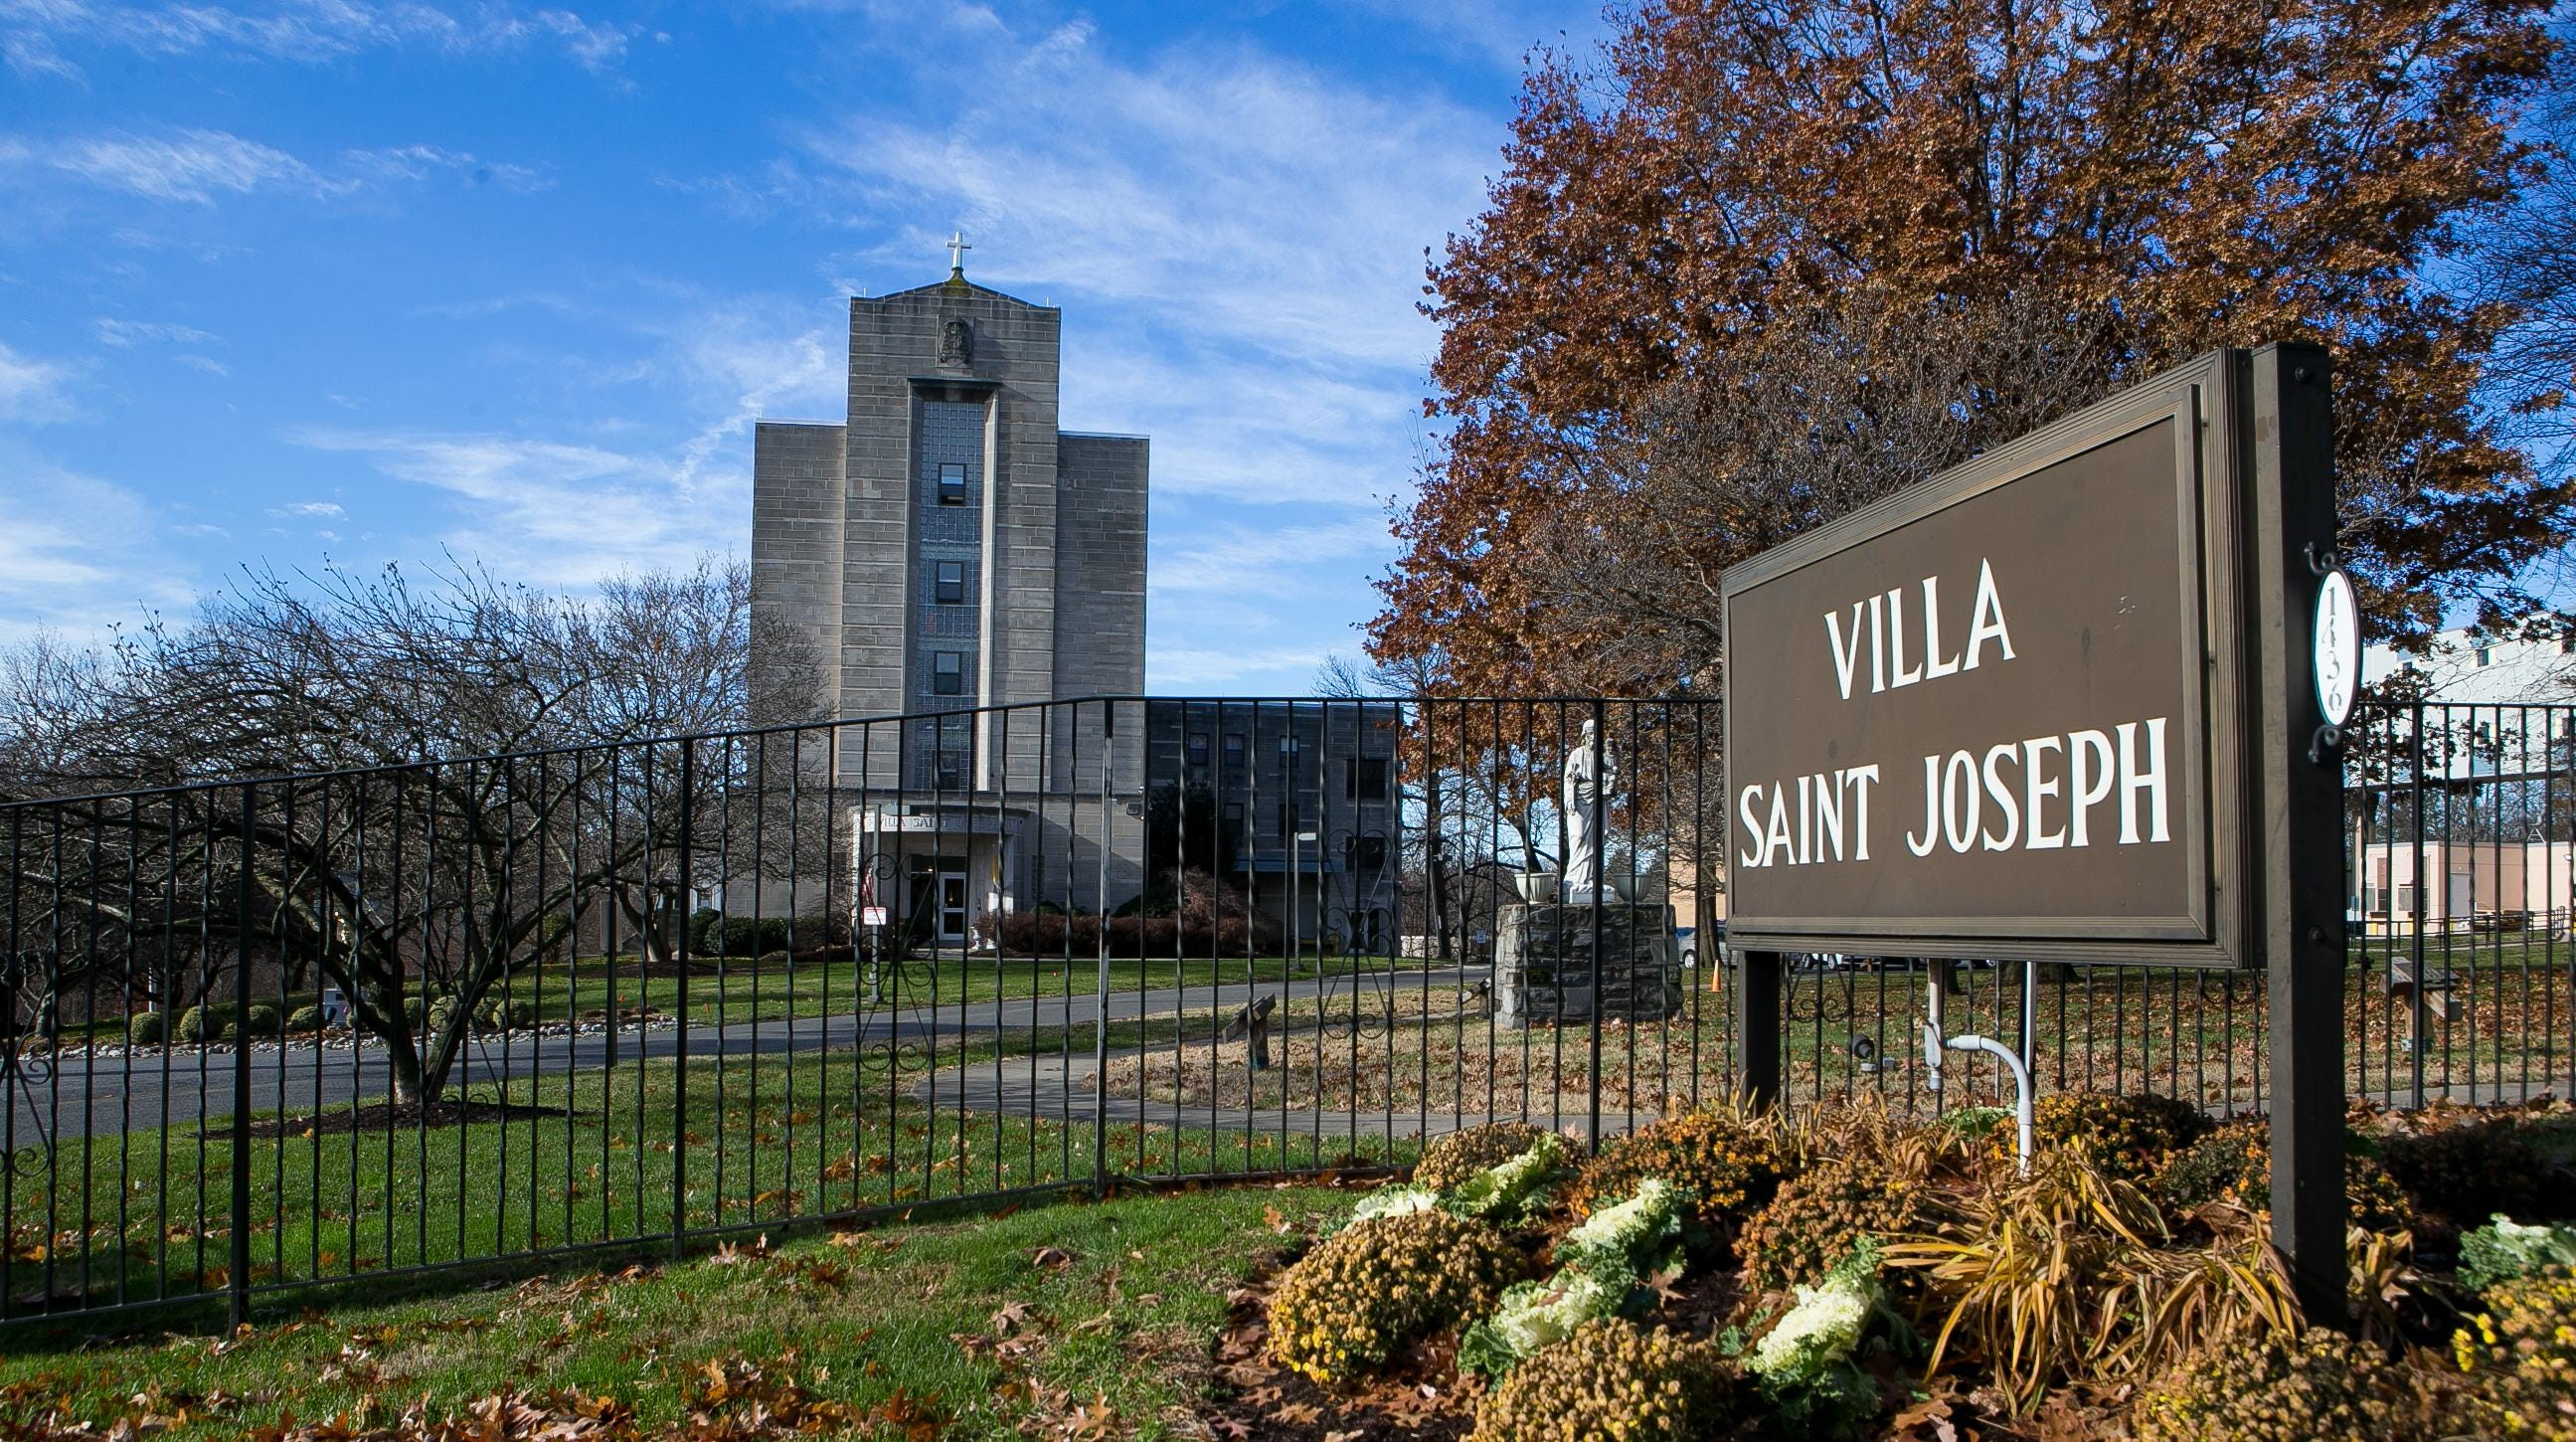 """Villa Saint Joseph in Darby, Pa. is a retirement home for priests in the Philadelphia area owned by the Catholic church, that houses among them 16 predator priests, all under a program known as """"Prayer and Penance."""""""